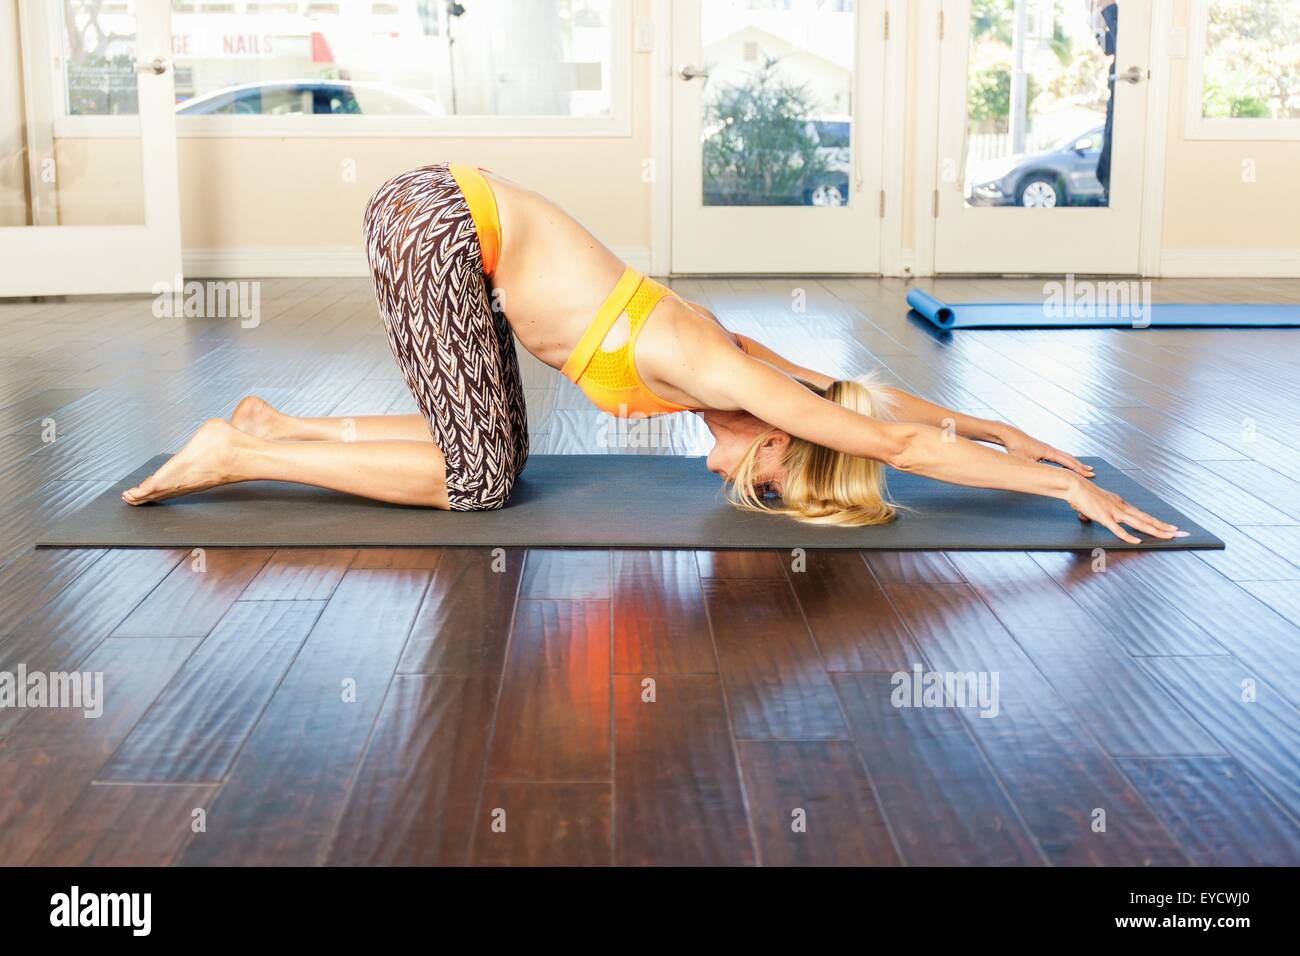 Mid adult woman in yoga pose - Stock Image